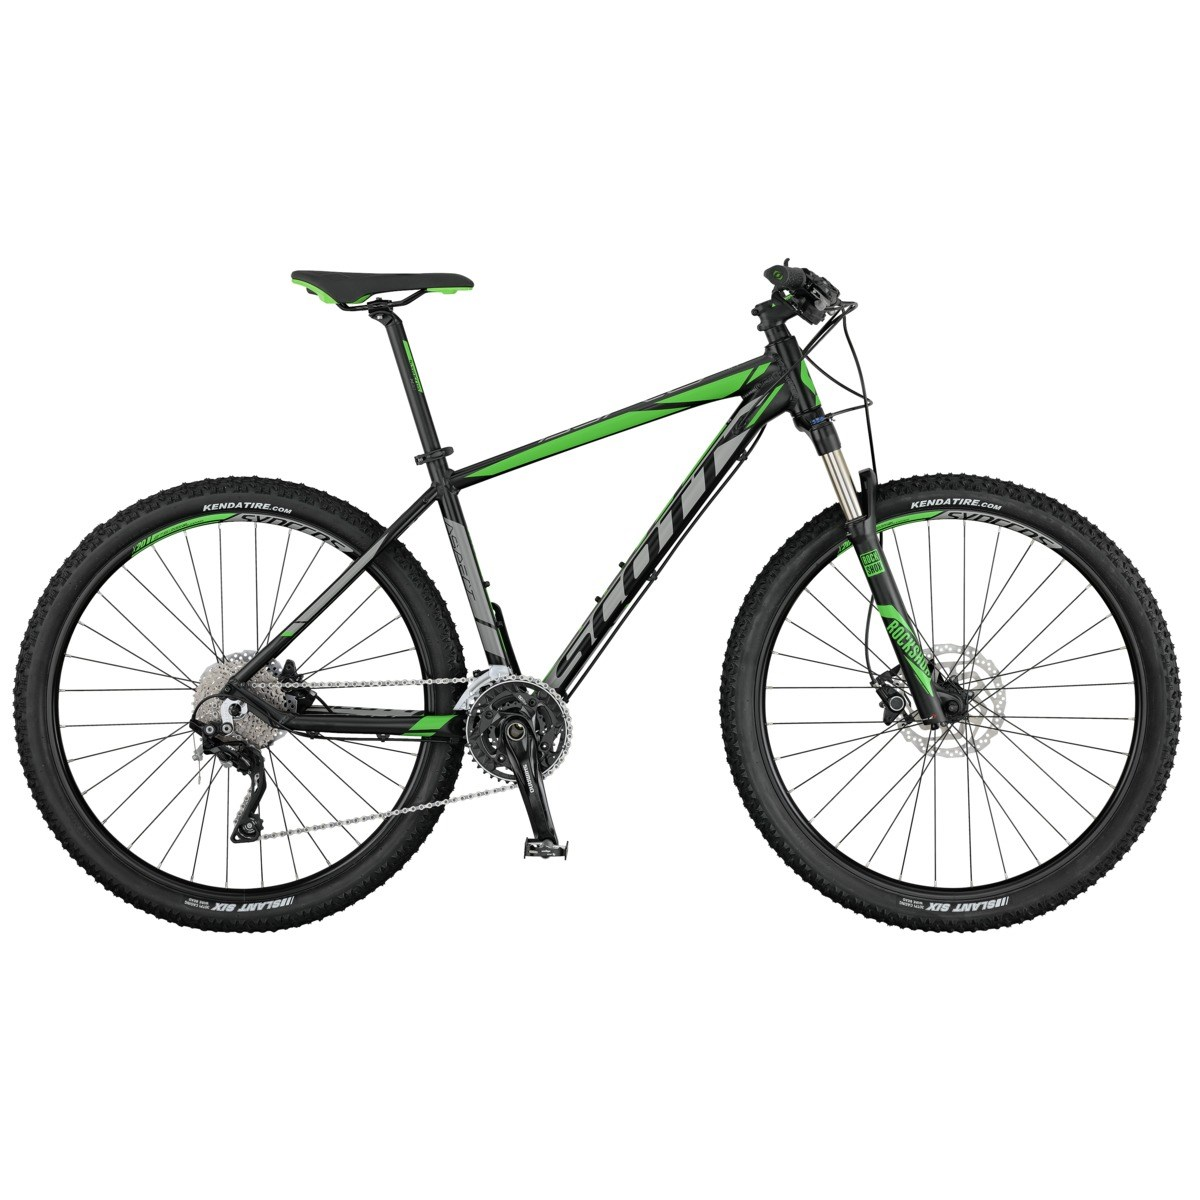 SCOTT Aspect 910 black/grey/green S 2017